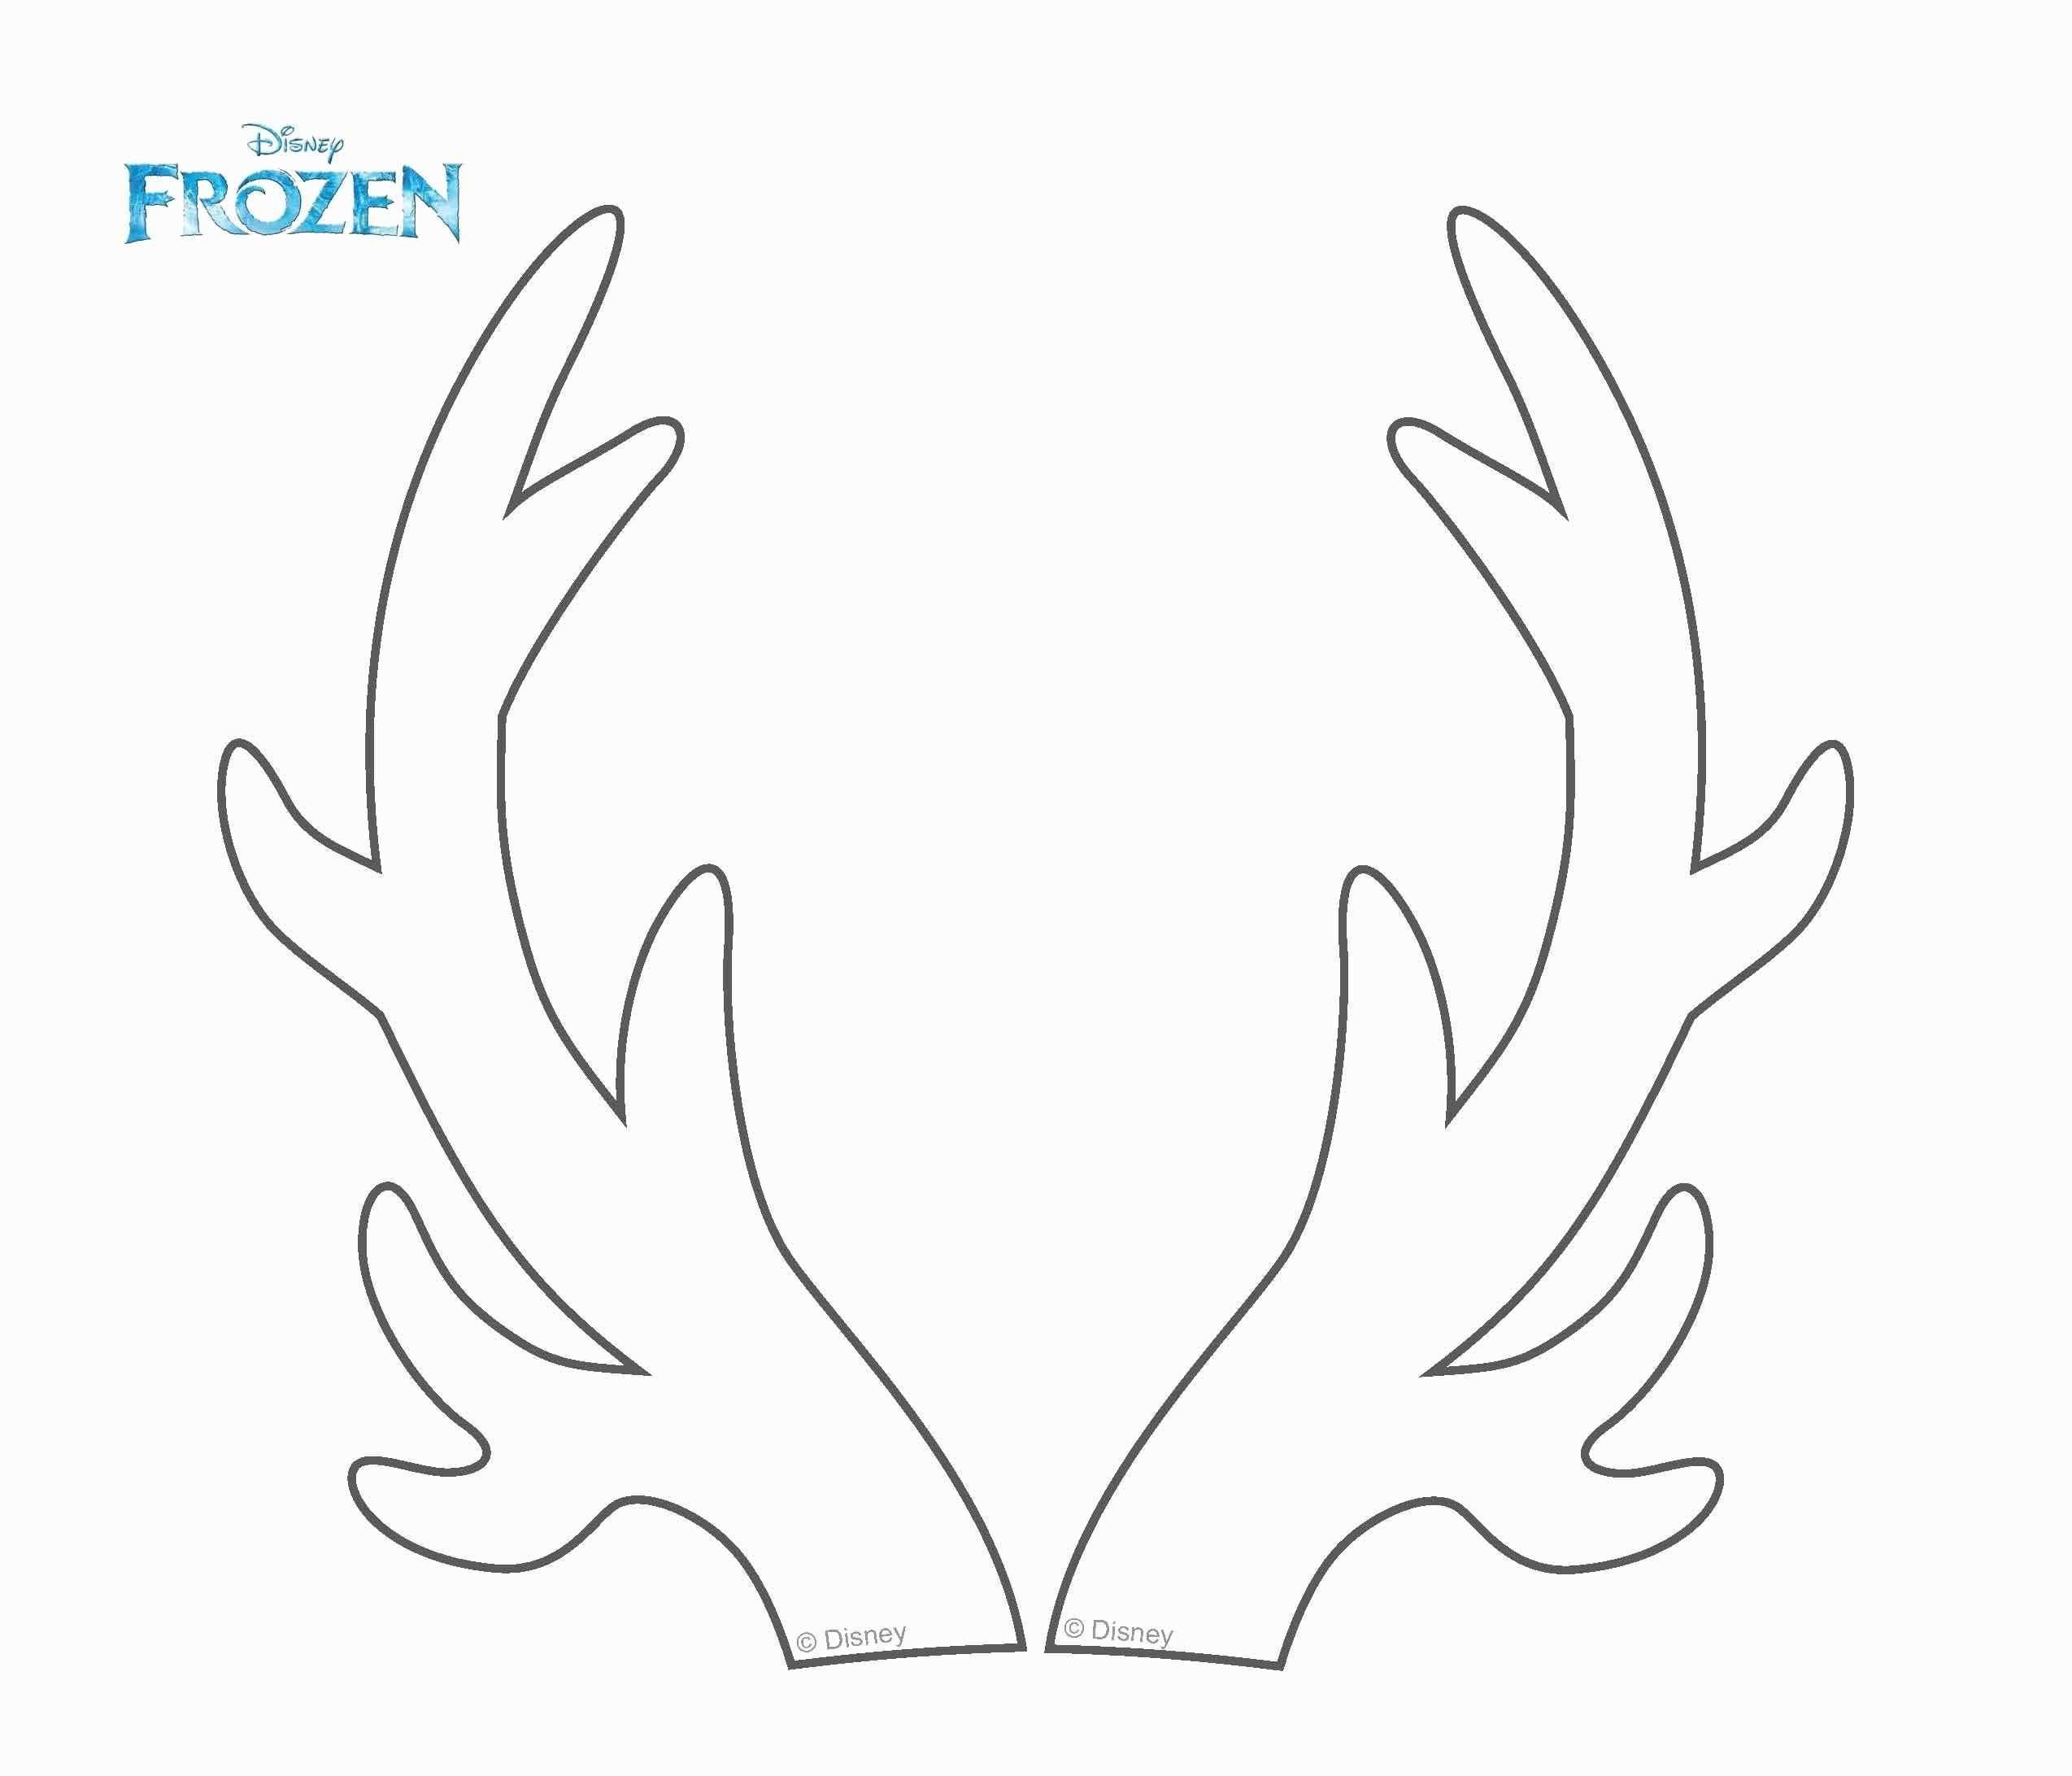 Reindeer Antlers Template Lovely Amazing Reindeer Antler Template Gift Example Resume Ideas Hairstyli Reindeer Antlers Reindeer Drawing Diy Christmas Reindeer